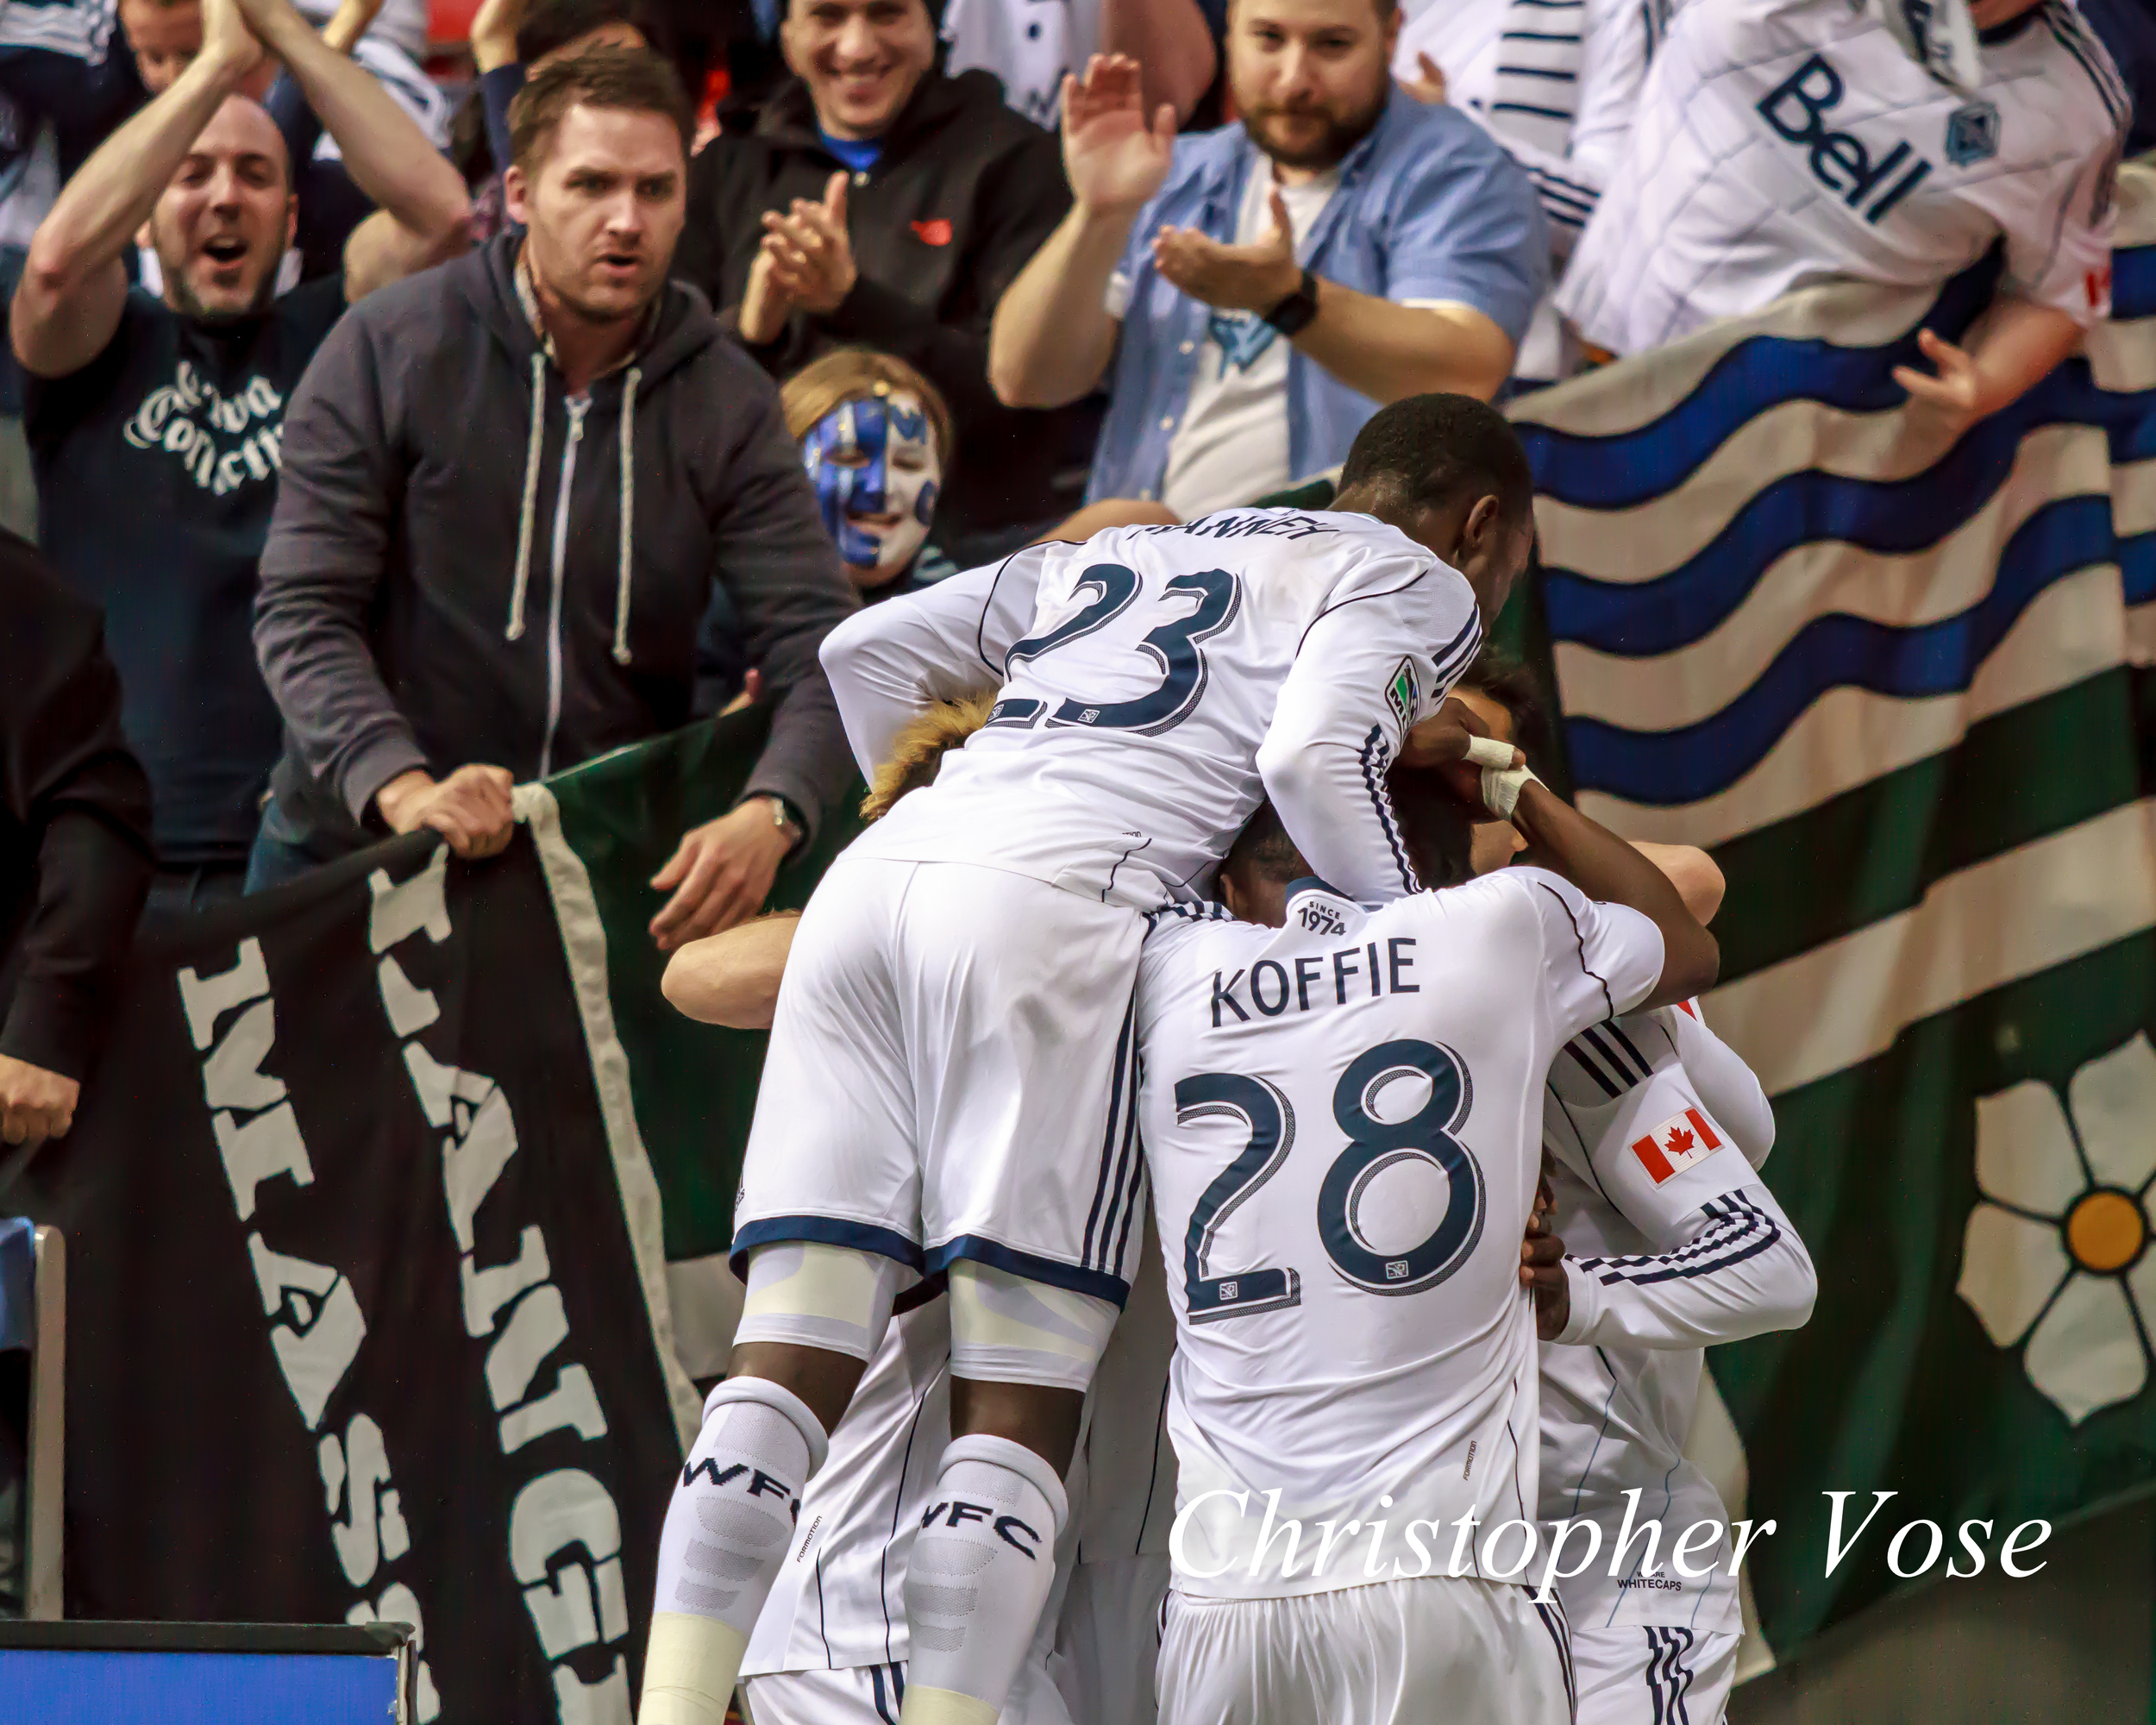 2014-04-19 Darren Mattocks Goal Celebration 1.jpg